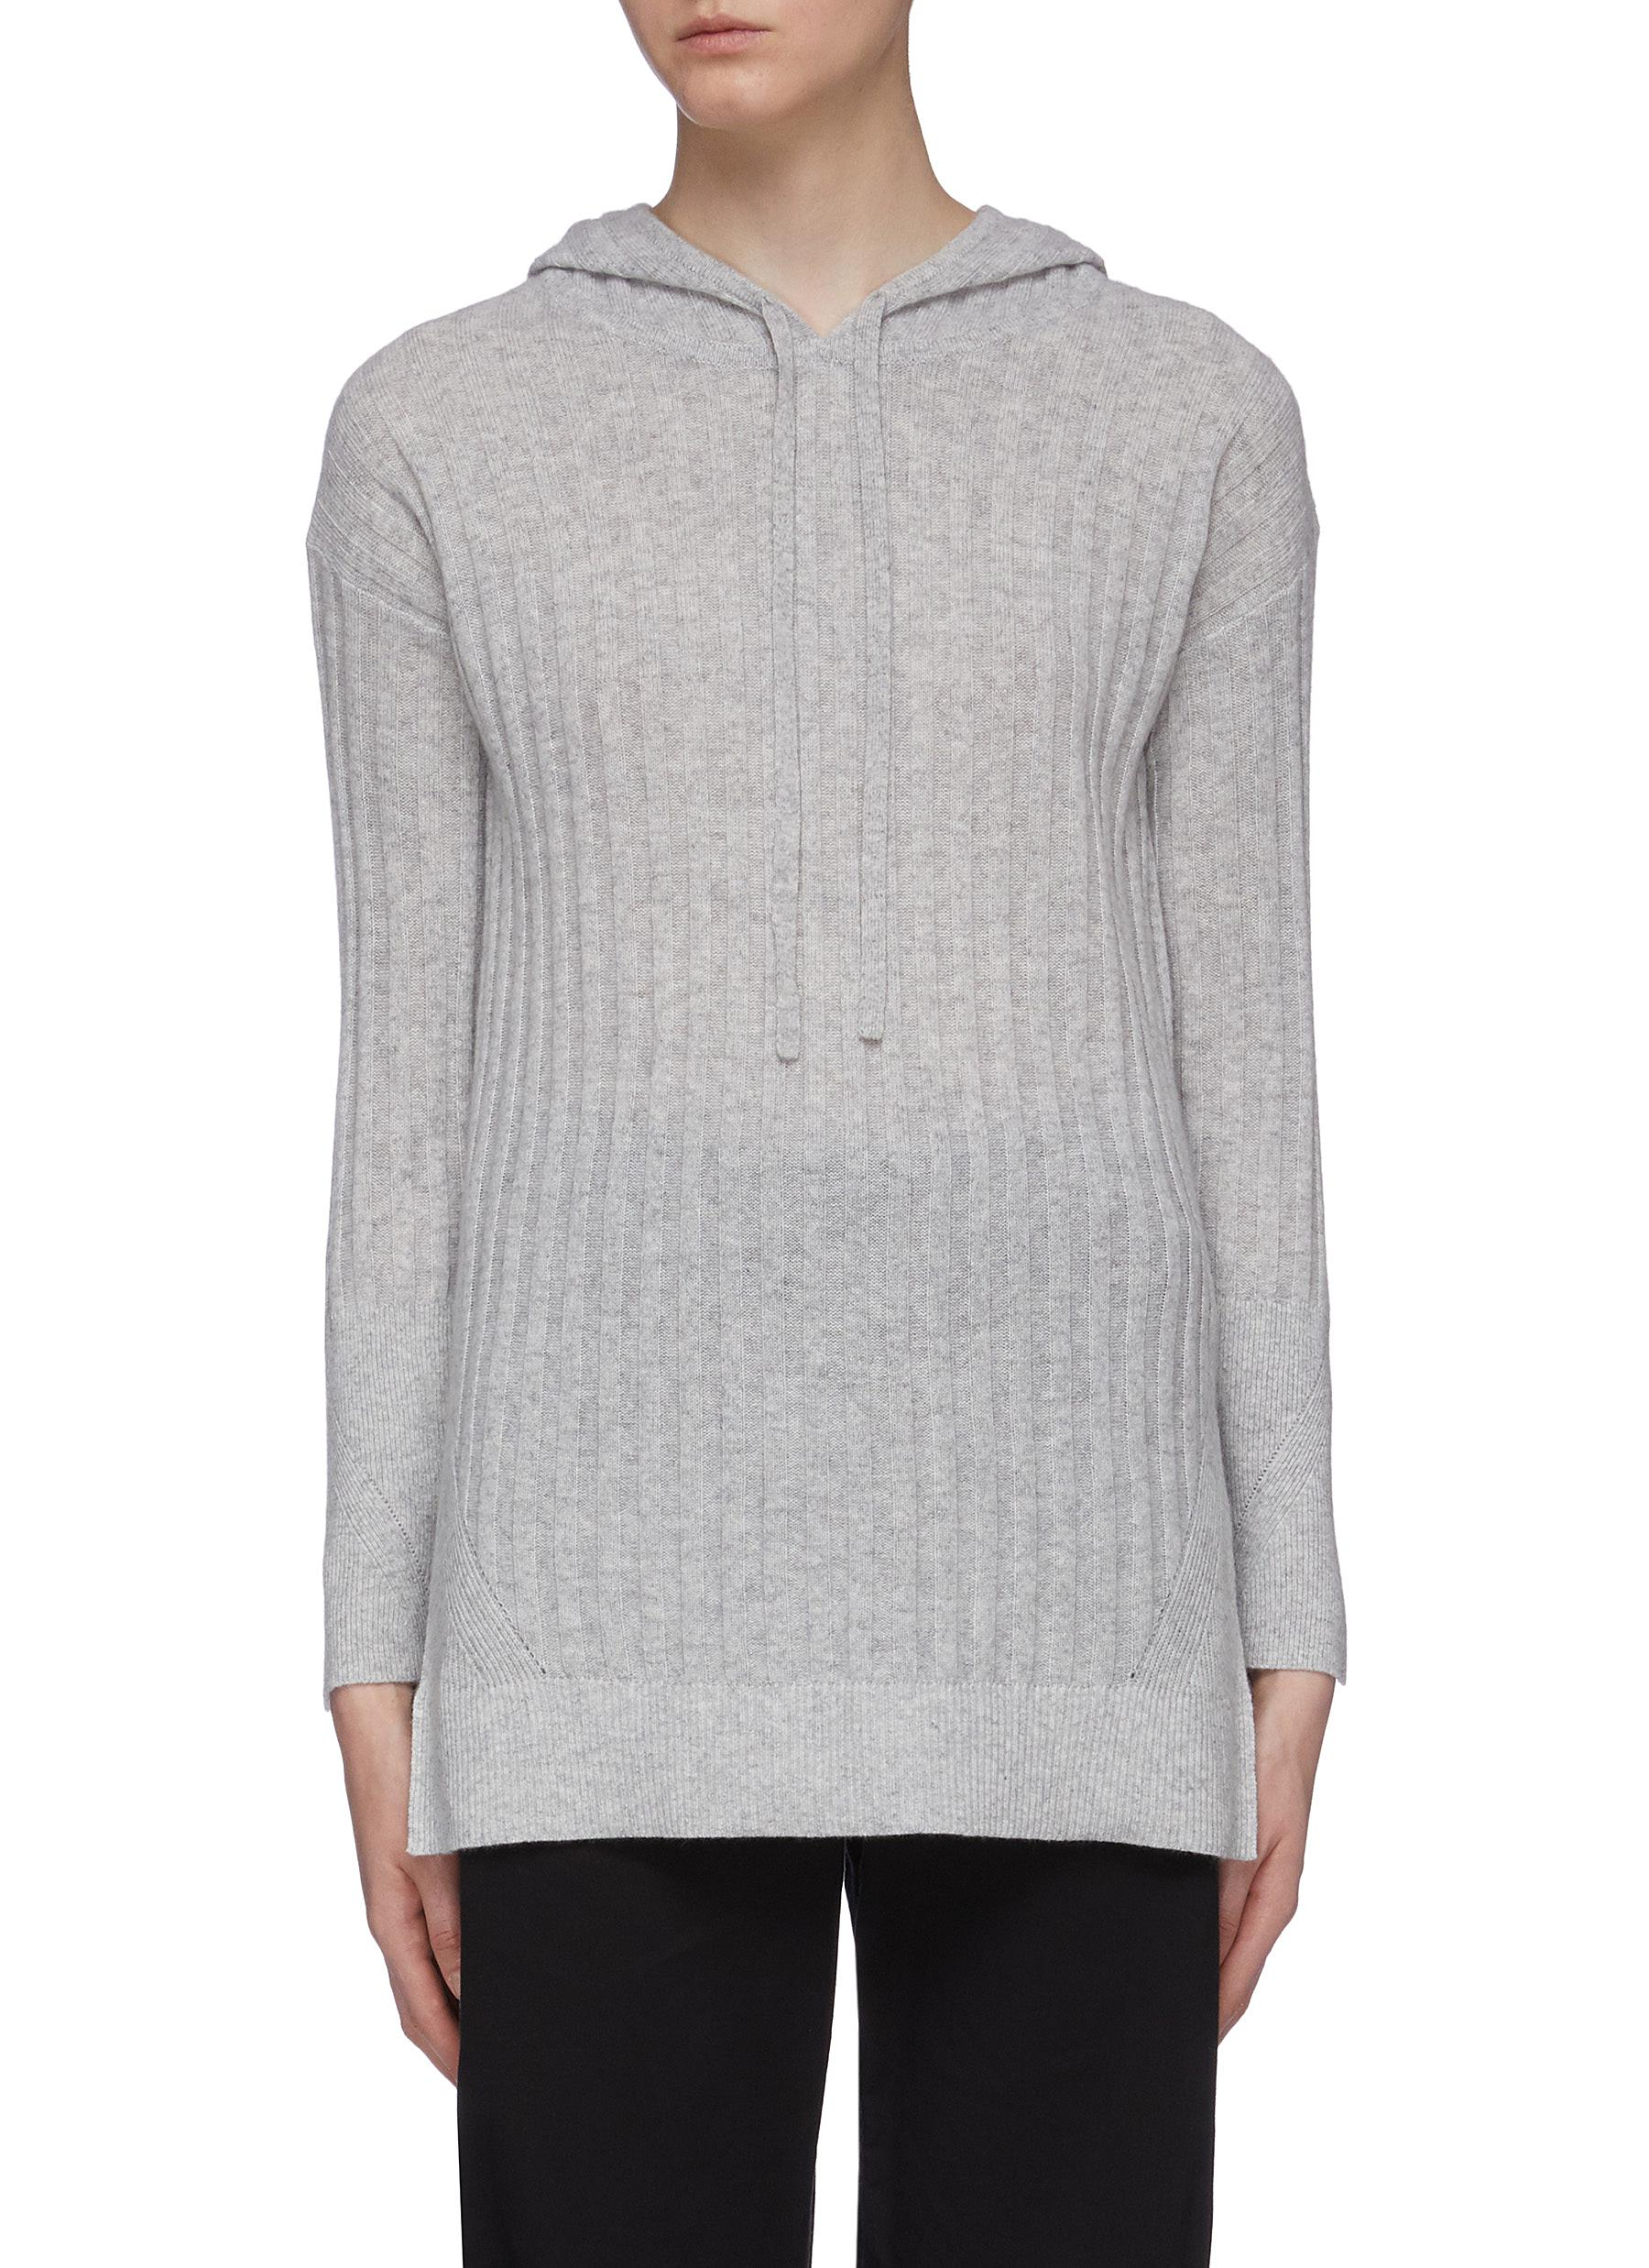 Cashmere rib knit hoodie by 3.1 Phillip Lim